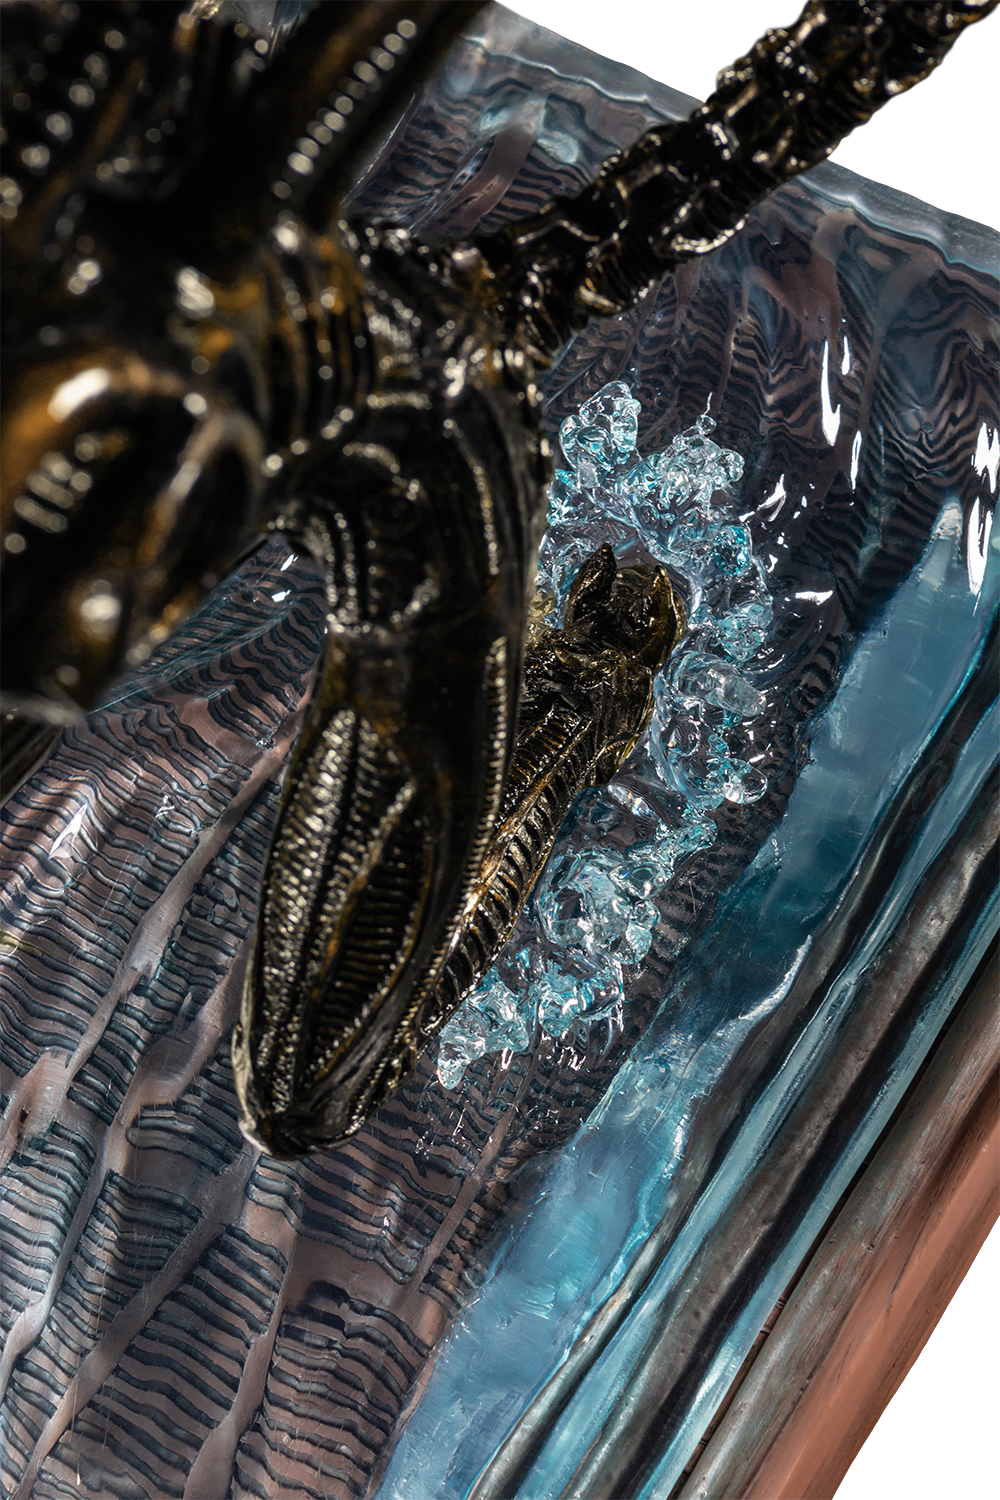 IKO1605-Alien-in-Water-Statue-New-Paint-19-226.png